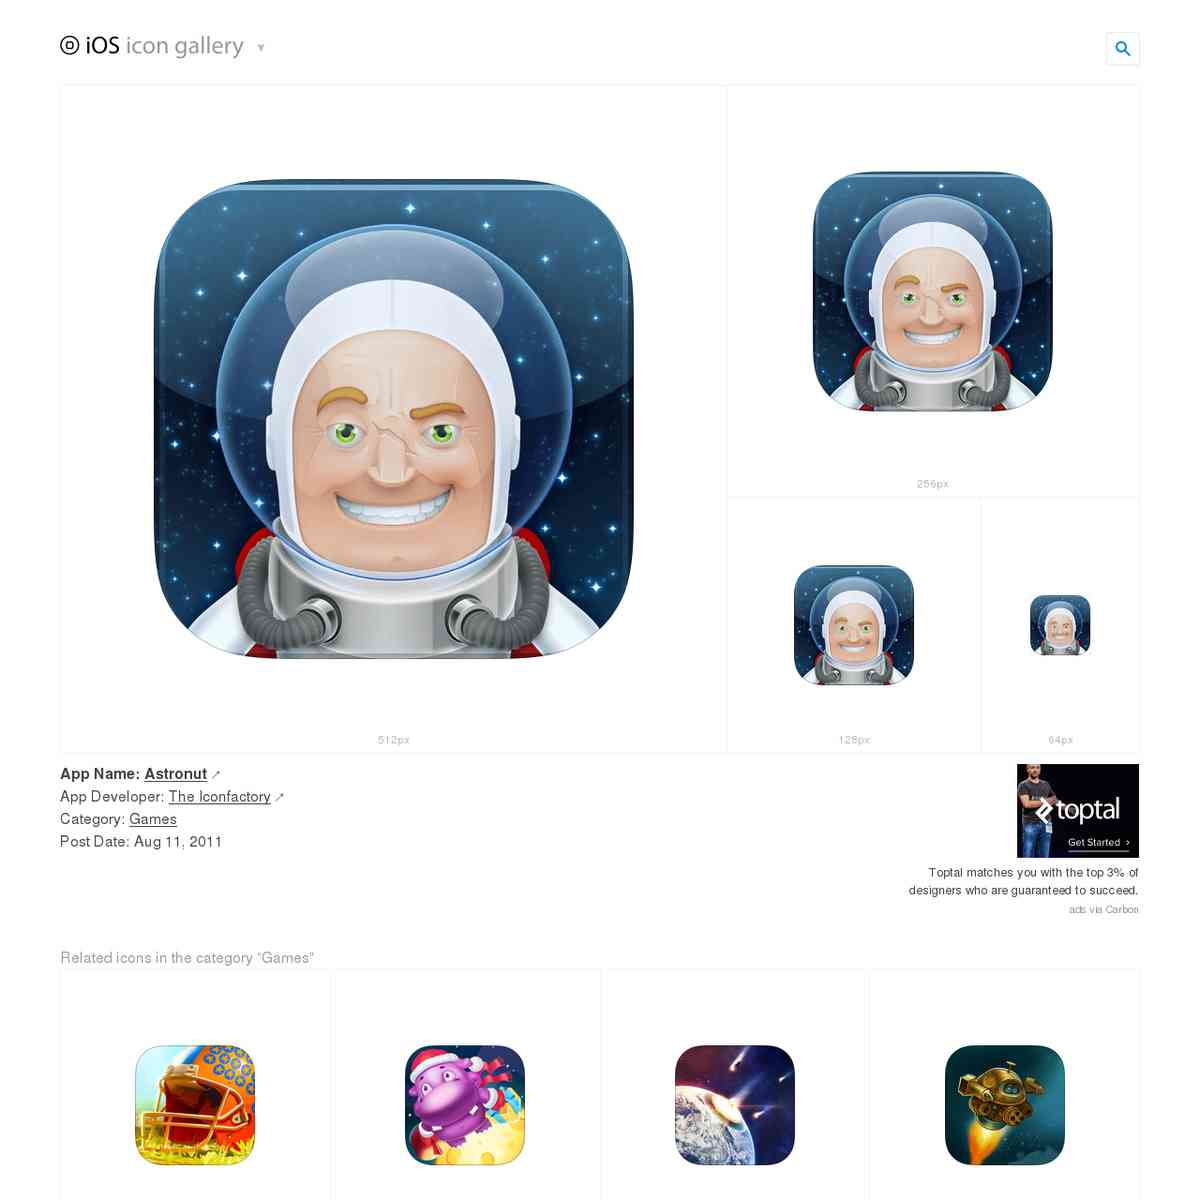 iosicongallery.com/games/astronut/